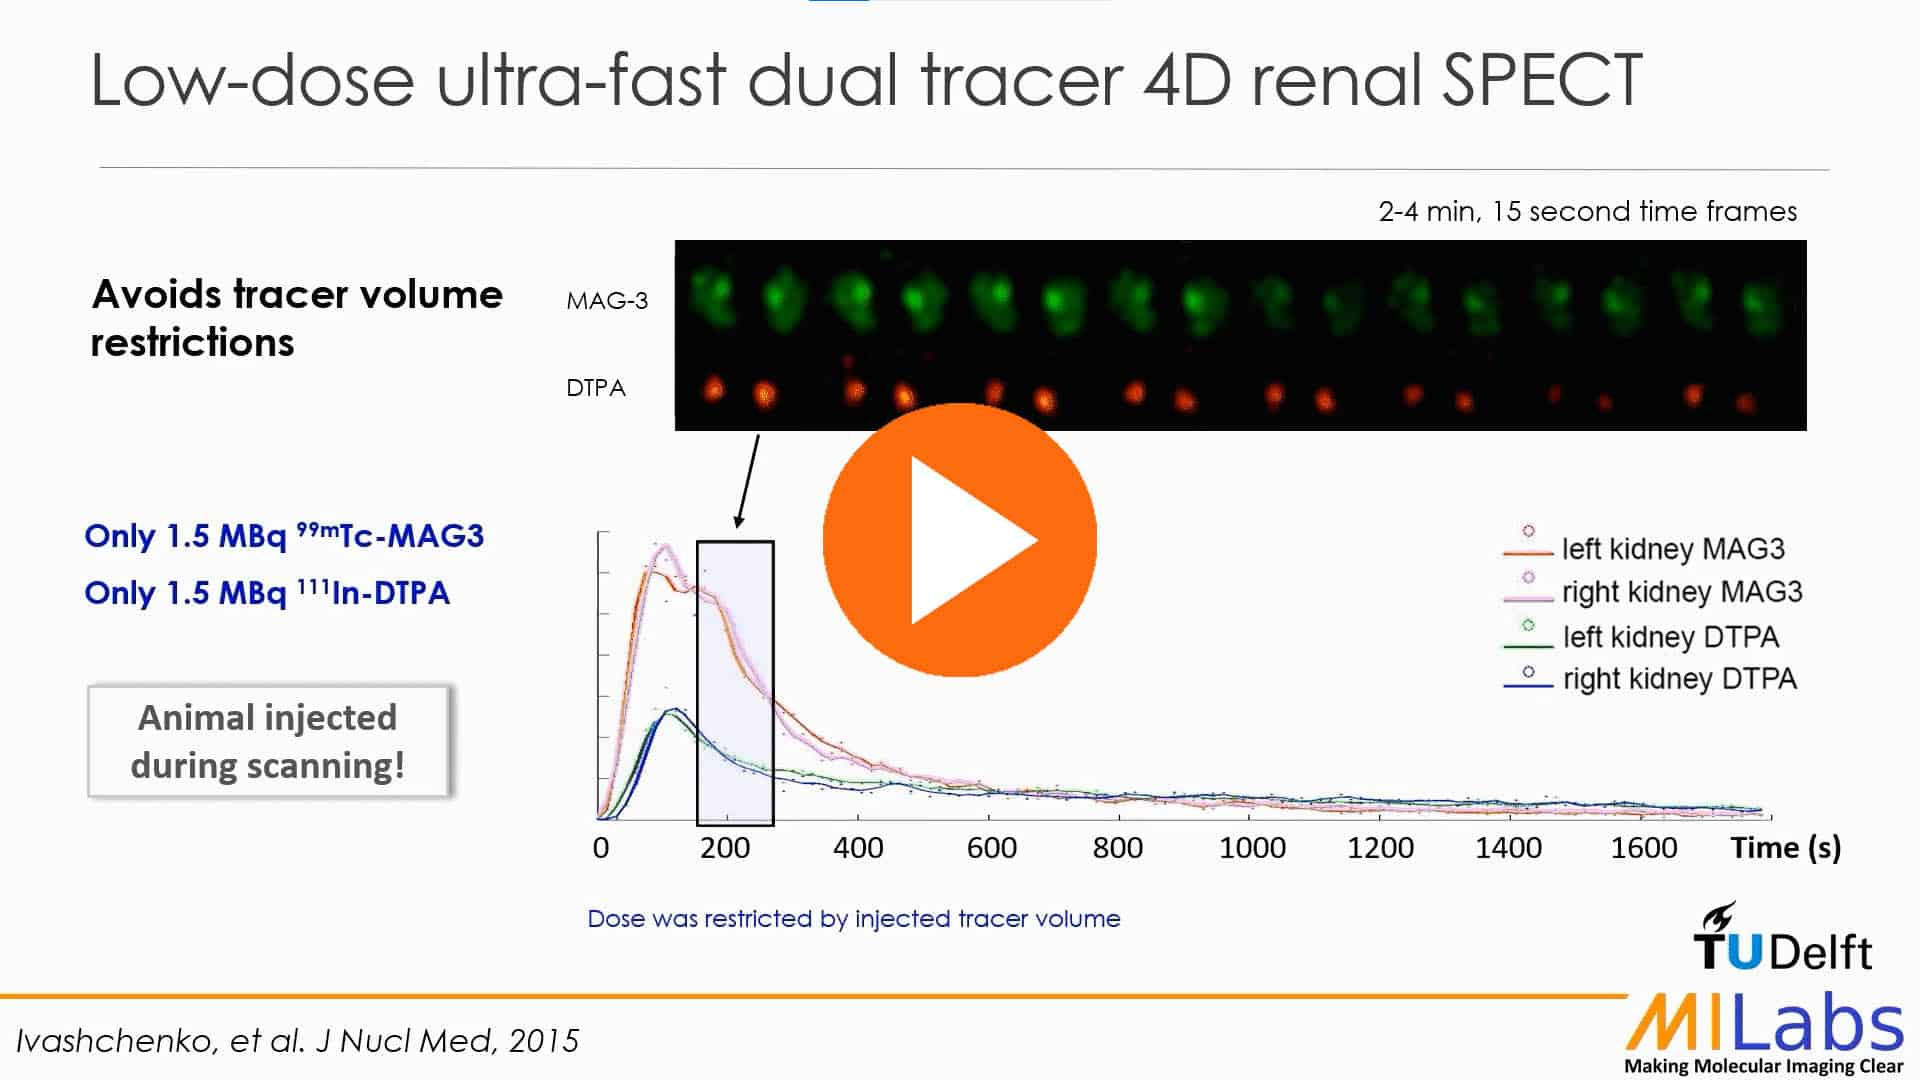 Low-Dose-Ultra-Fast-Dual-Tracer-4D-Renal-Spect